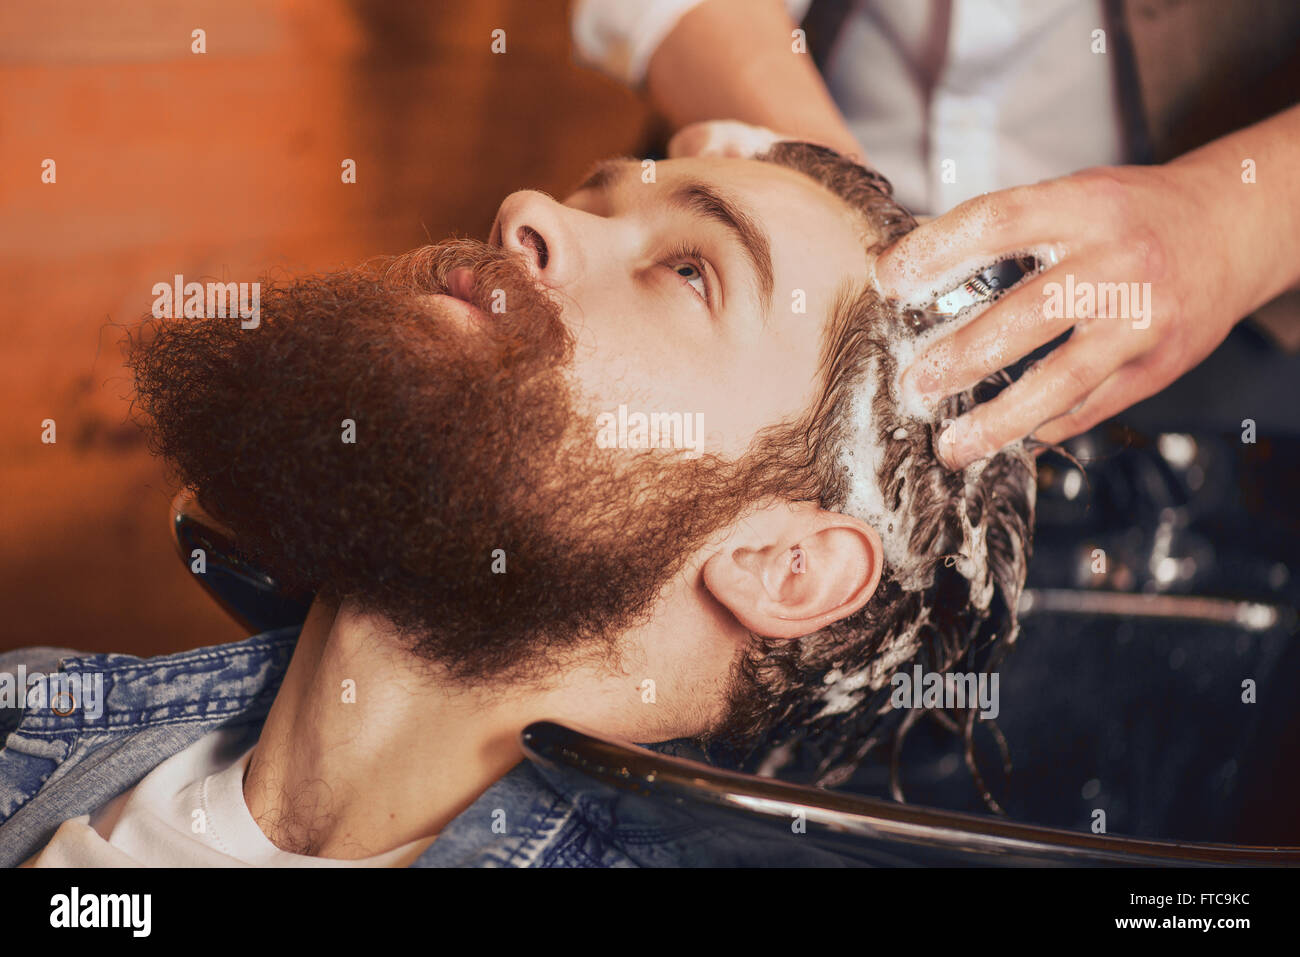 professional barber washing head of his client - Stock Image